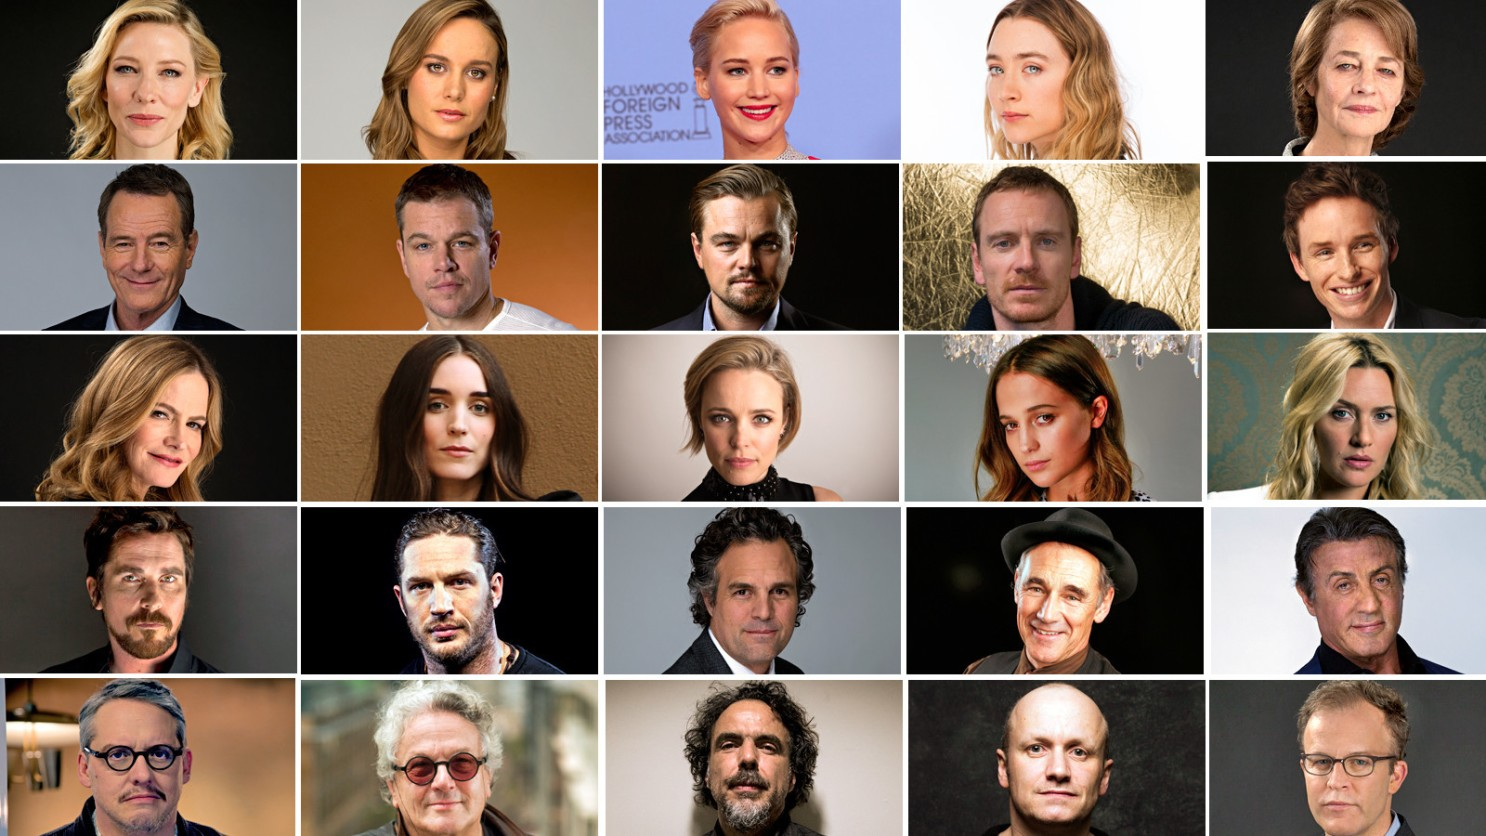 It's hard not to see why many were upset--these were the nominees at the 2016 Oscars. Yikes.